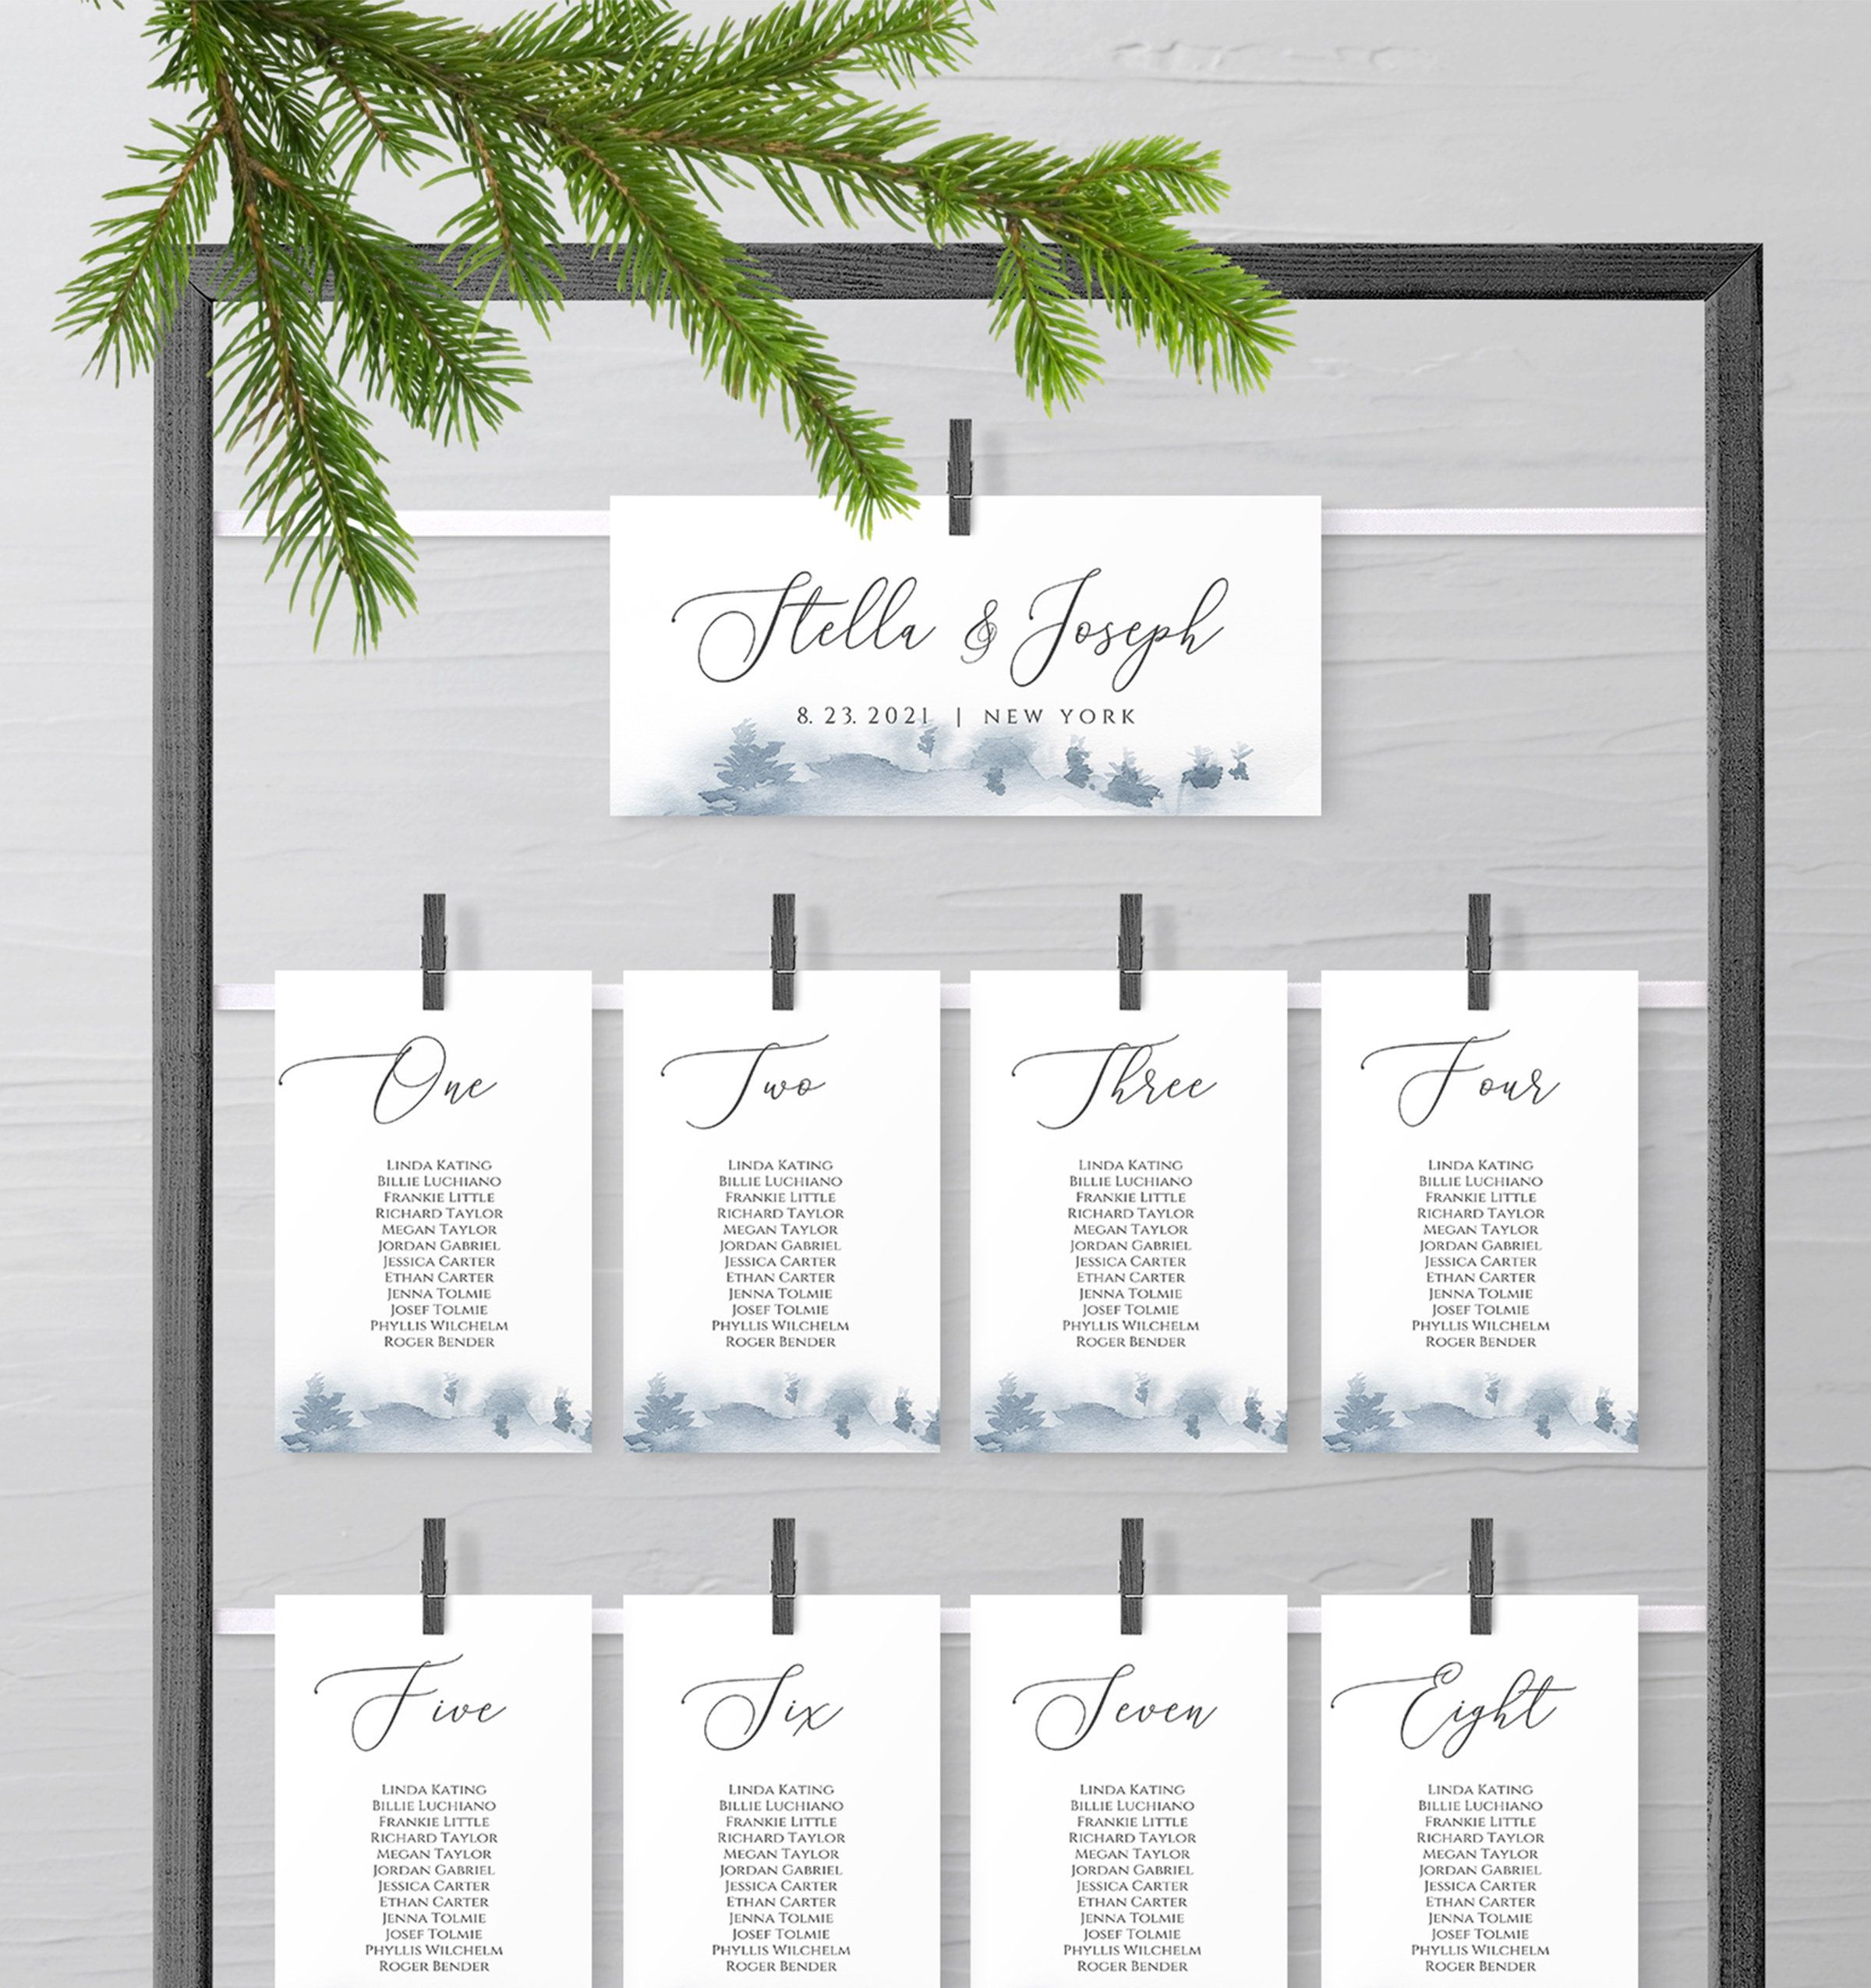 12 Perfectly Organized Seating Charts From Etsy Seating Chart Wedding Template Seating Chart Wedding Wedding Table Seating